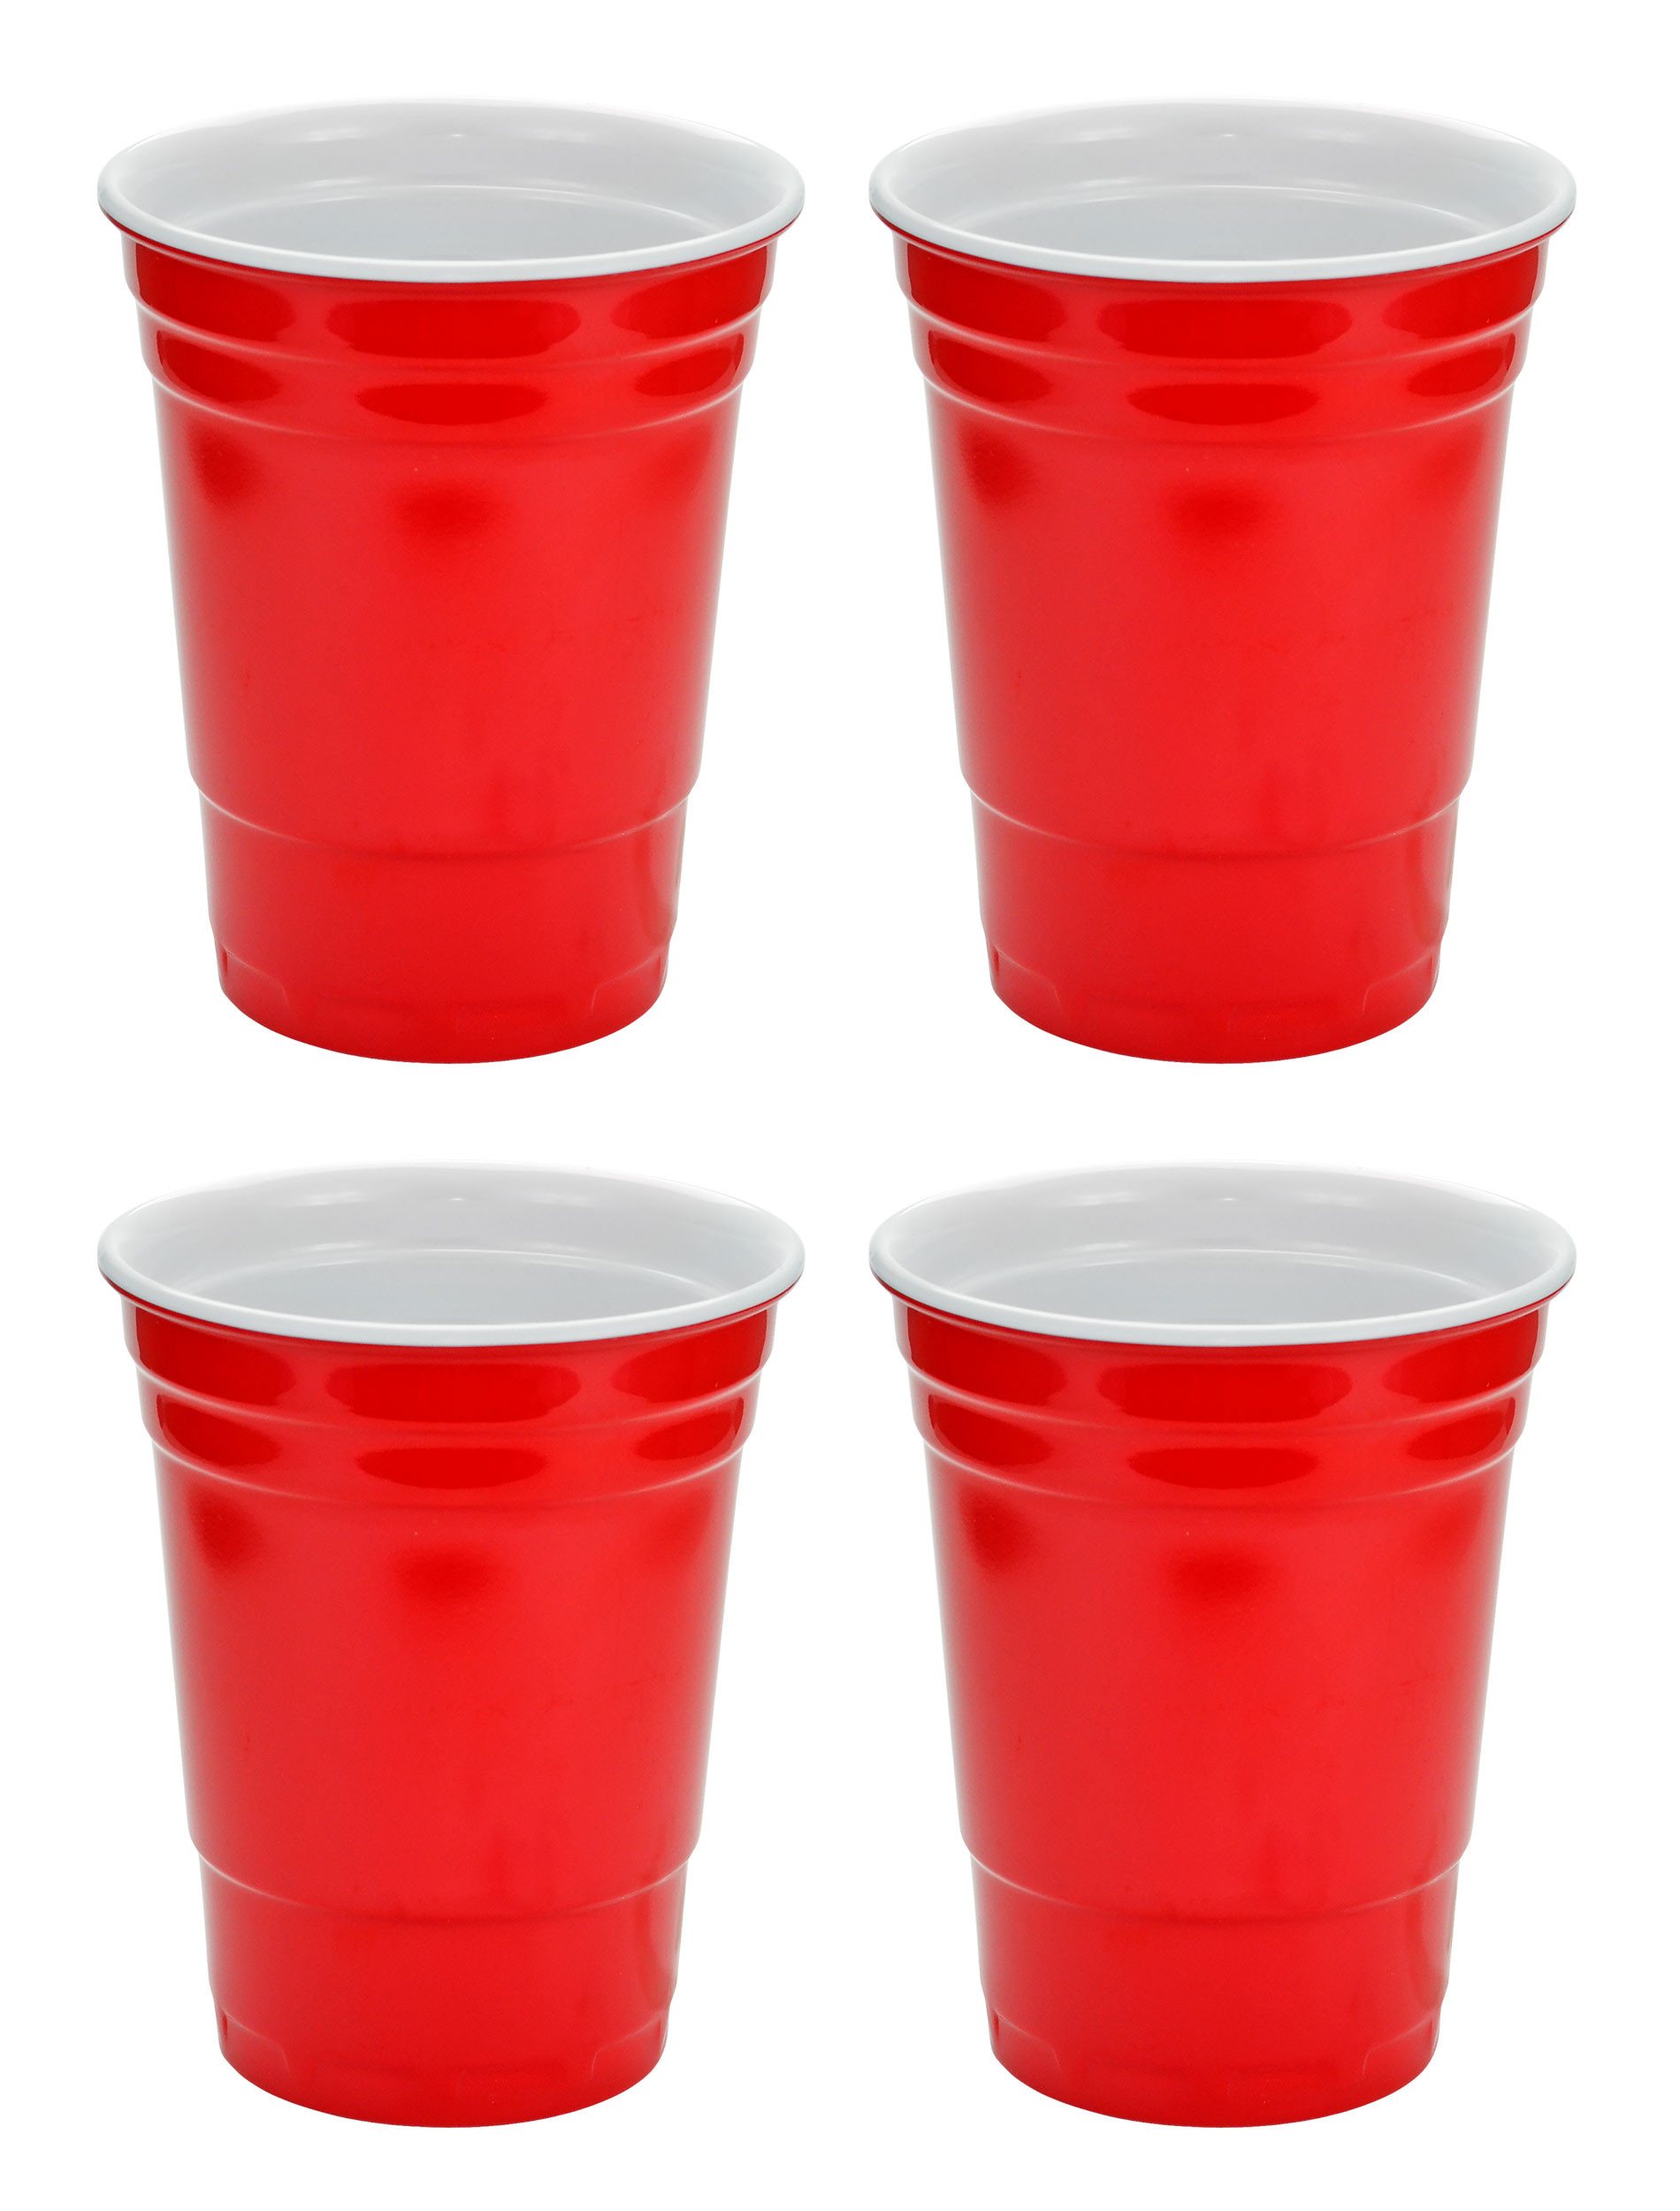 Red Hard Plastic Cup 16oz - 4 Pack